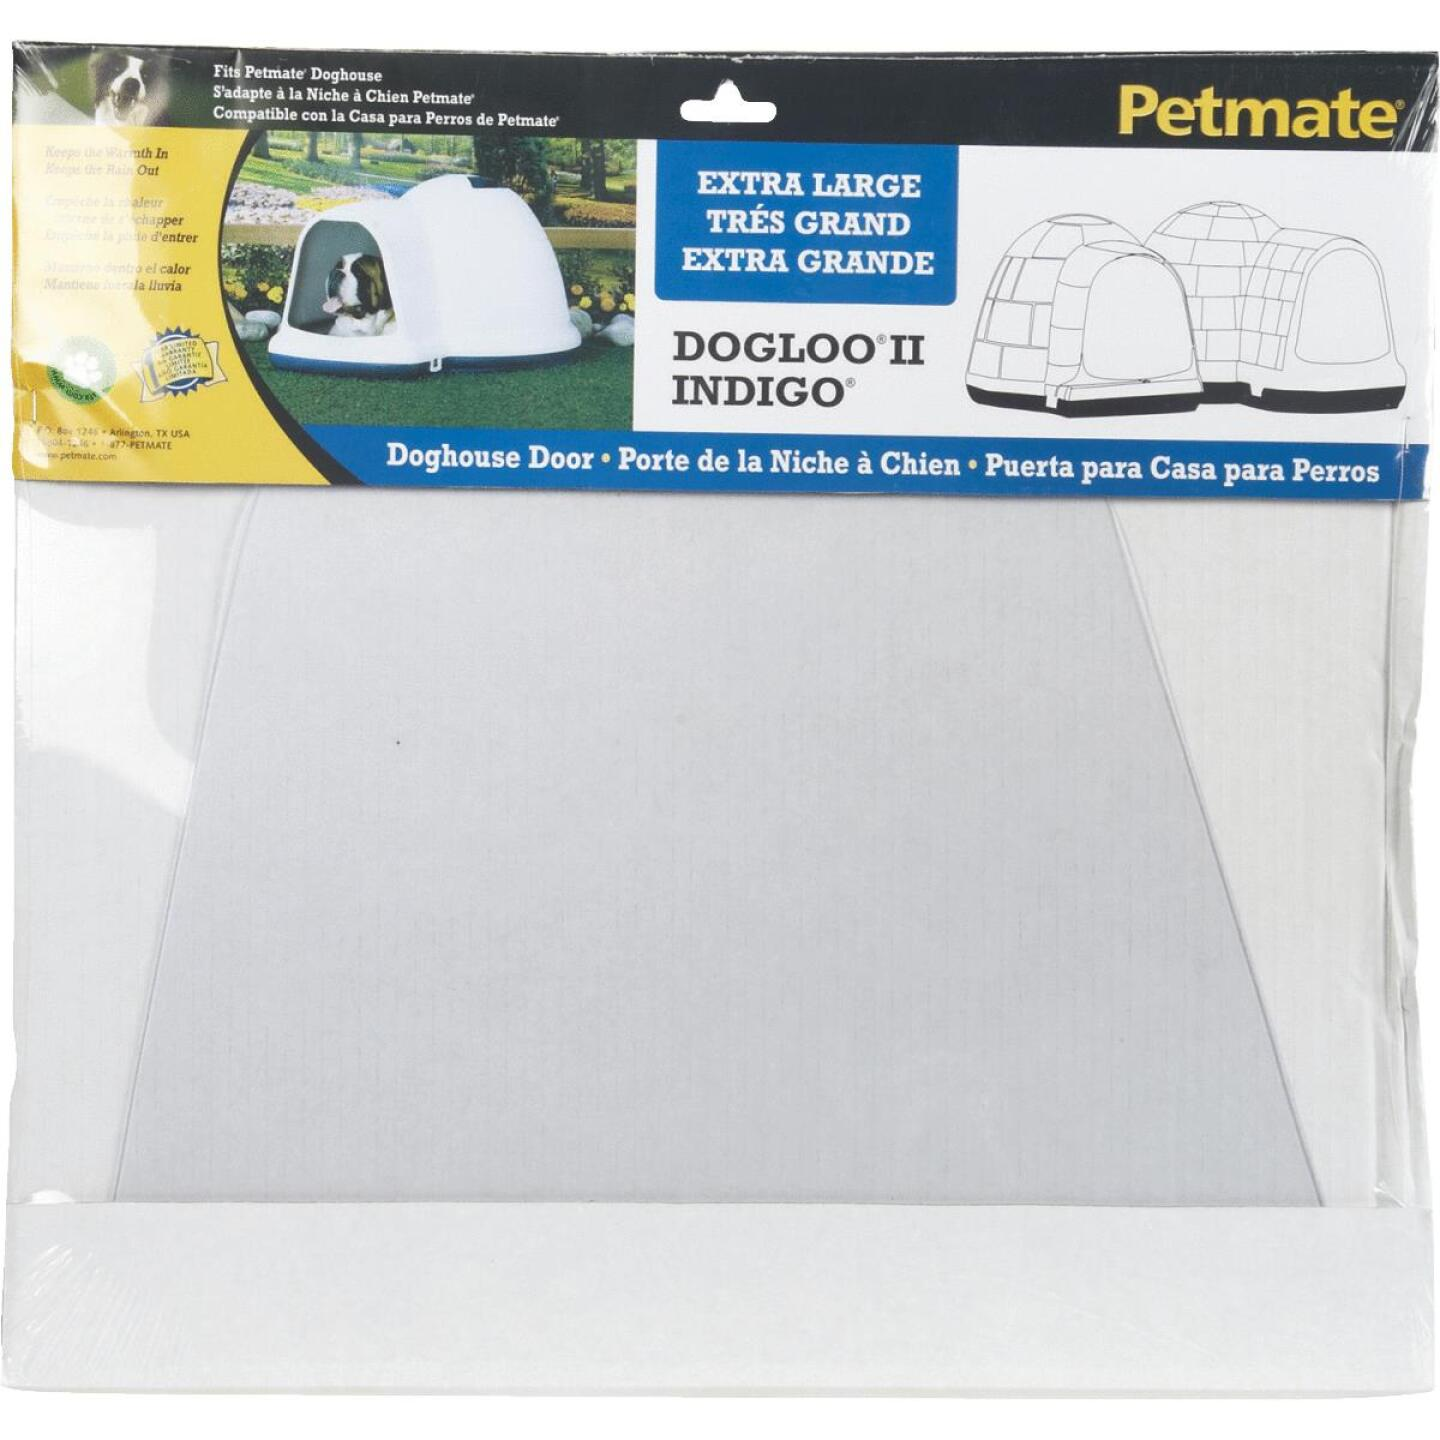 Petmate Indigo 17.5 In. x 17 In. XL Dog House Door Image 1